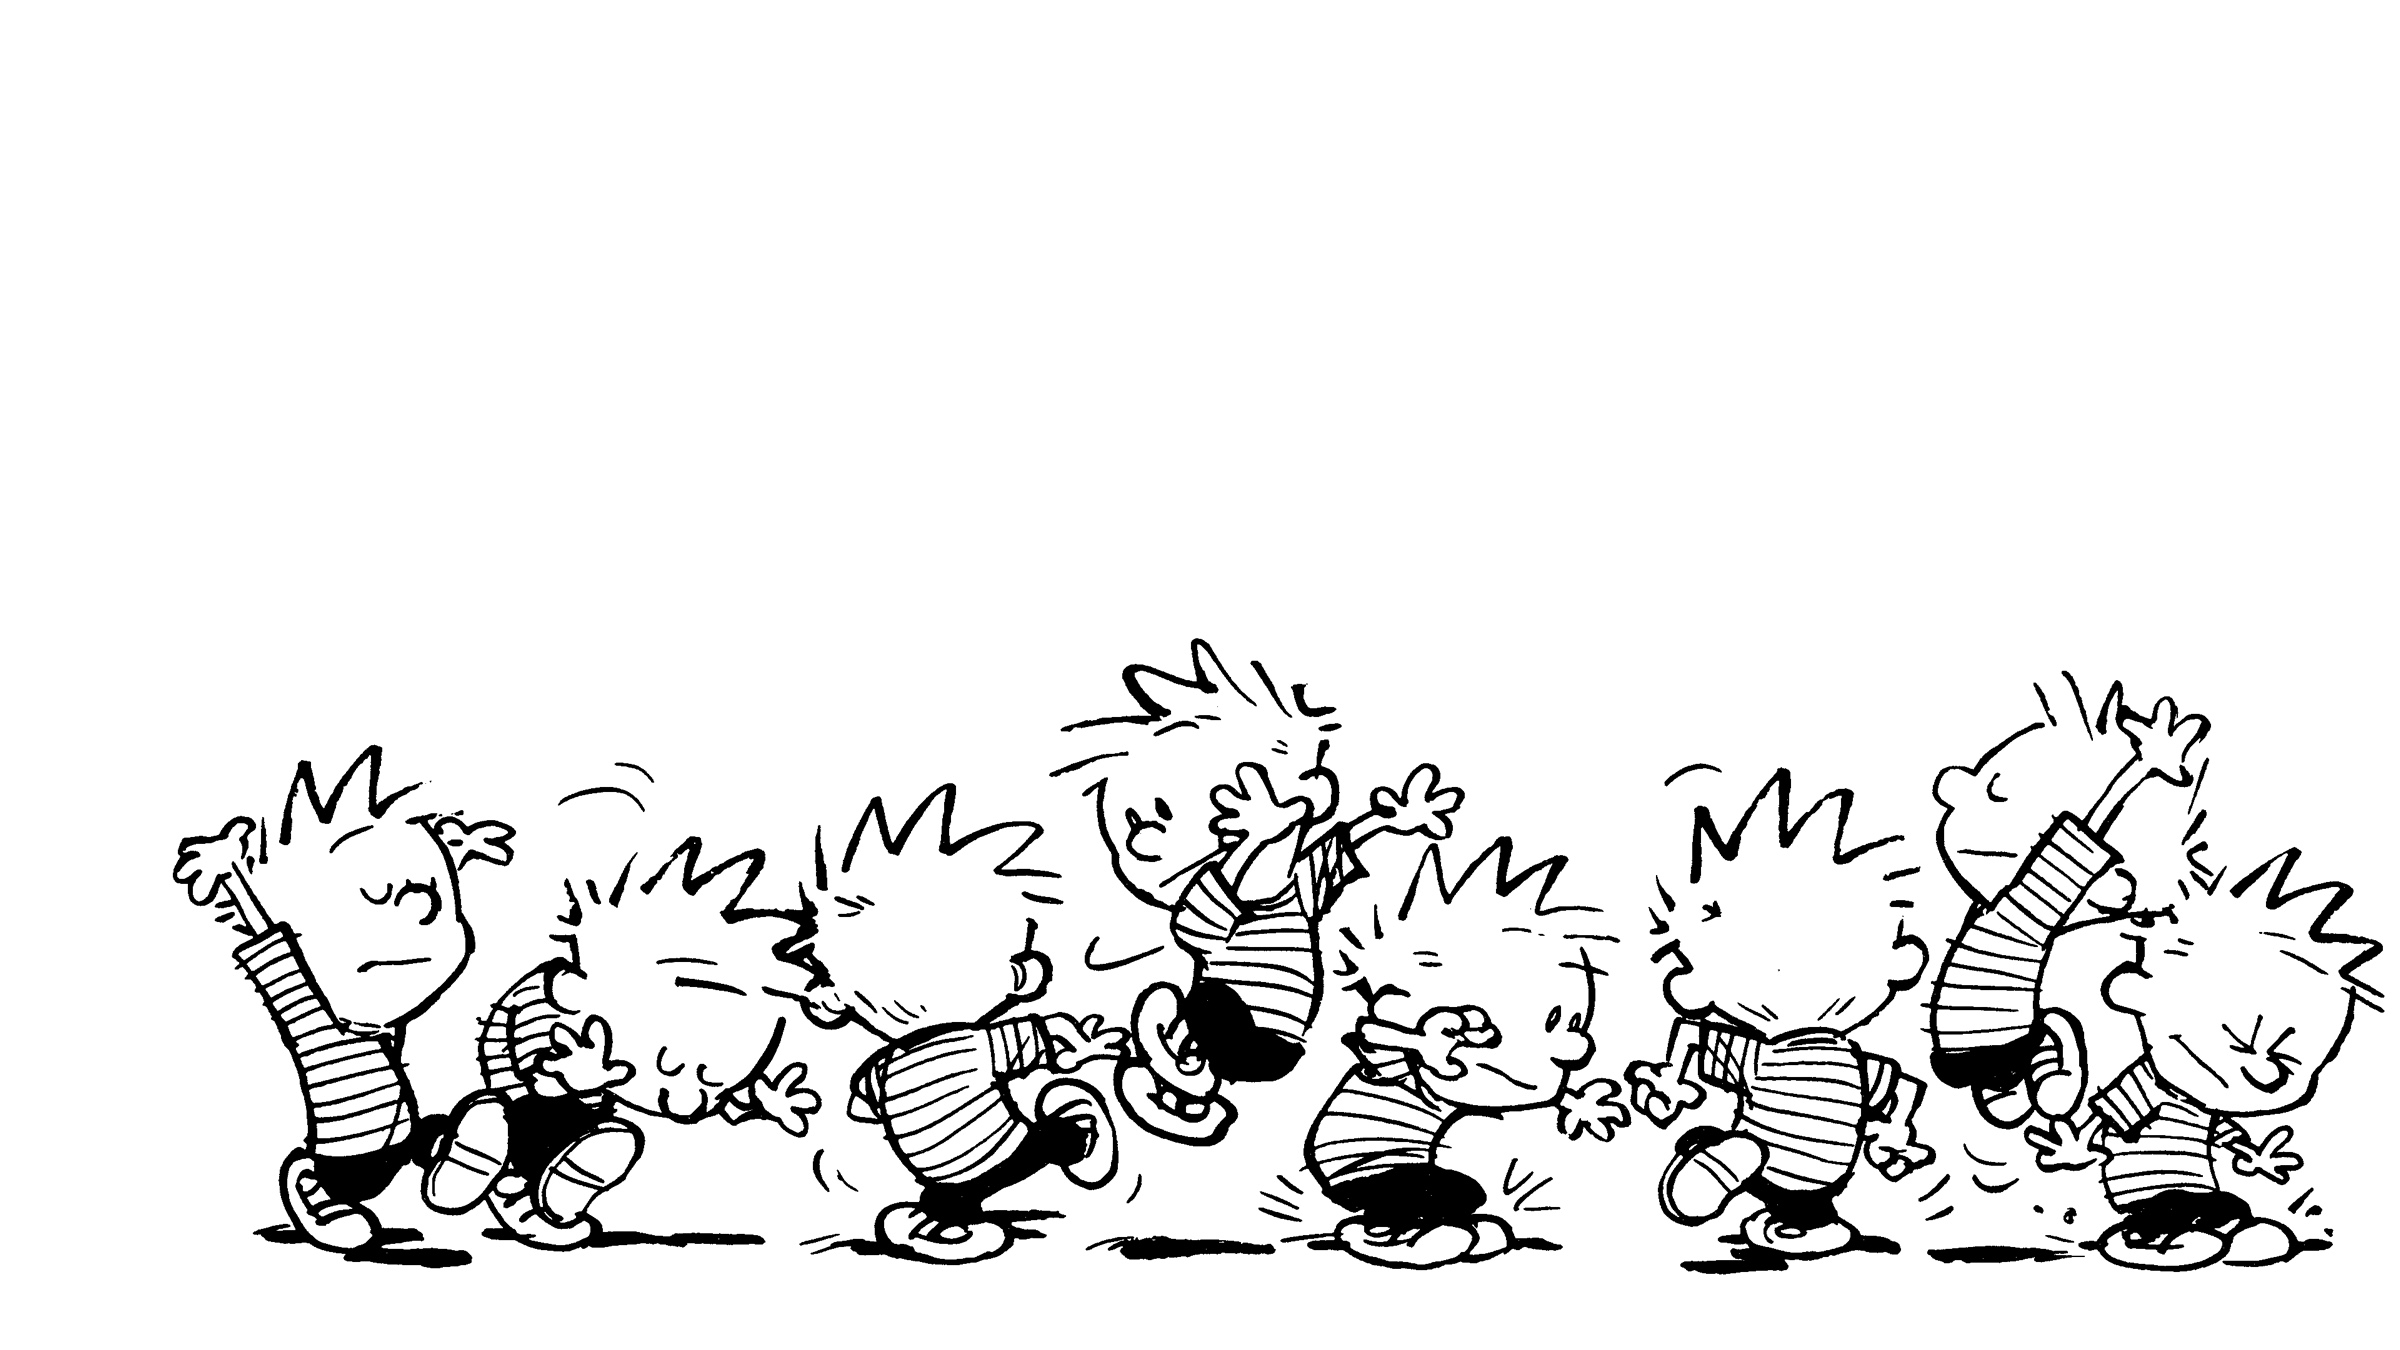 Calvin and hobbes comics r wallpaper 2400x1350 162418 2400x1350